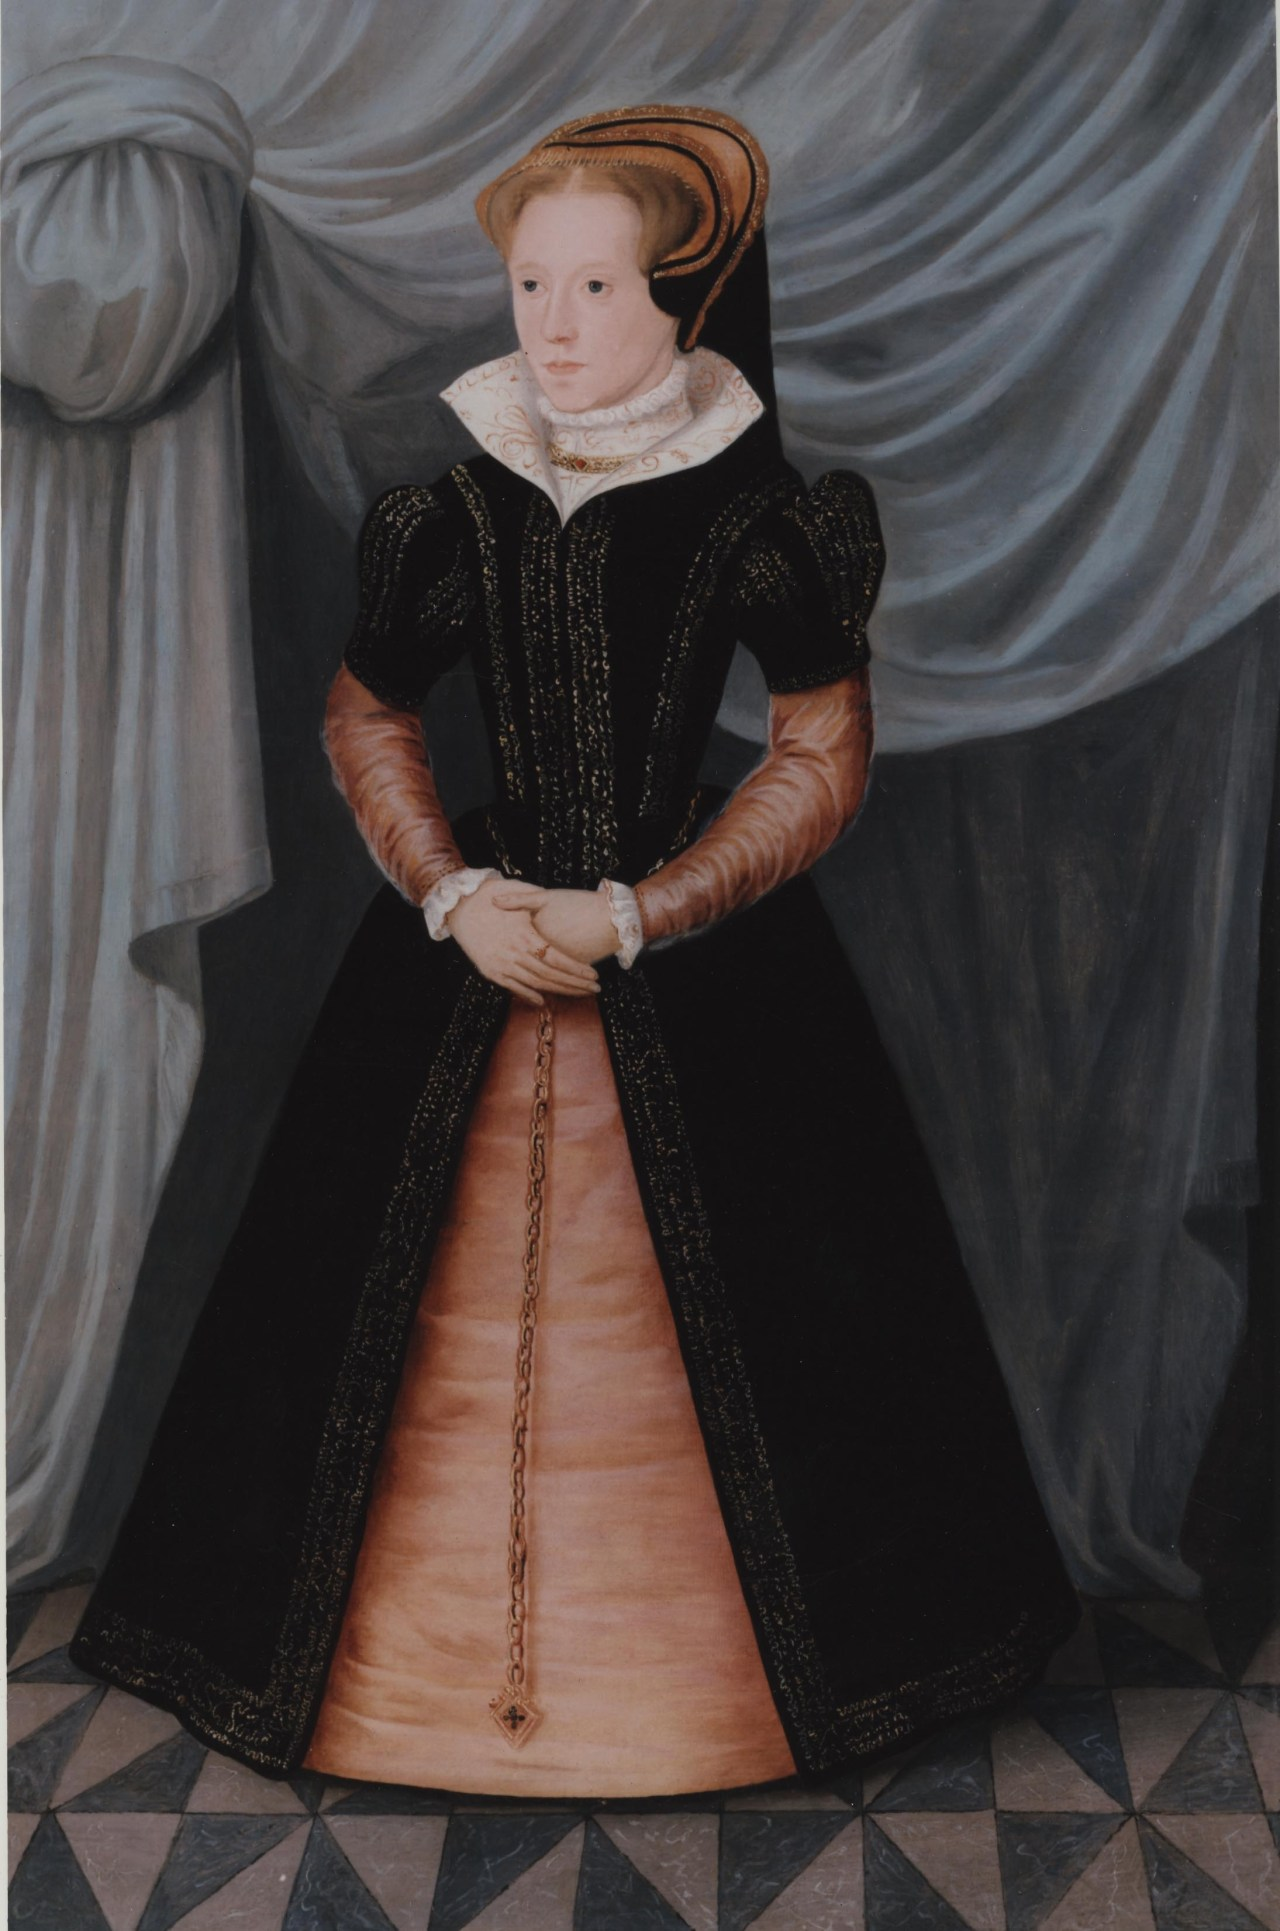 Mary I visited Ludlow Castle